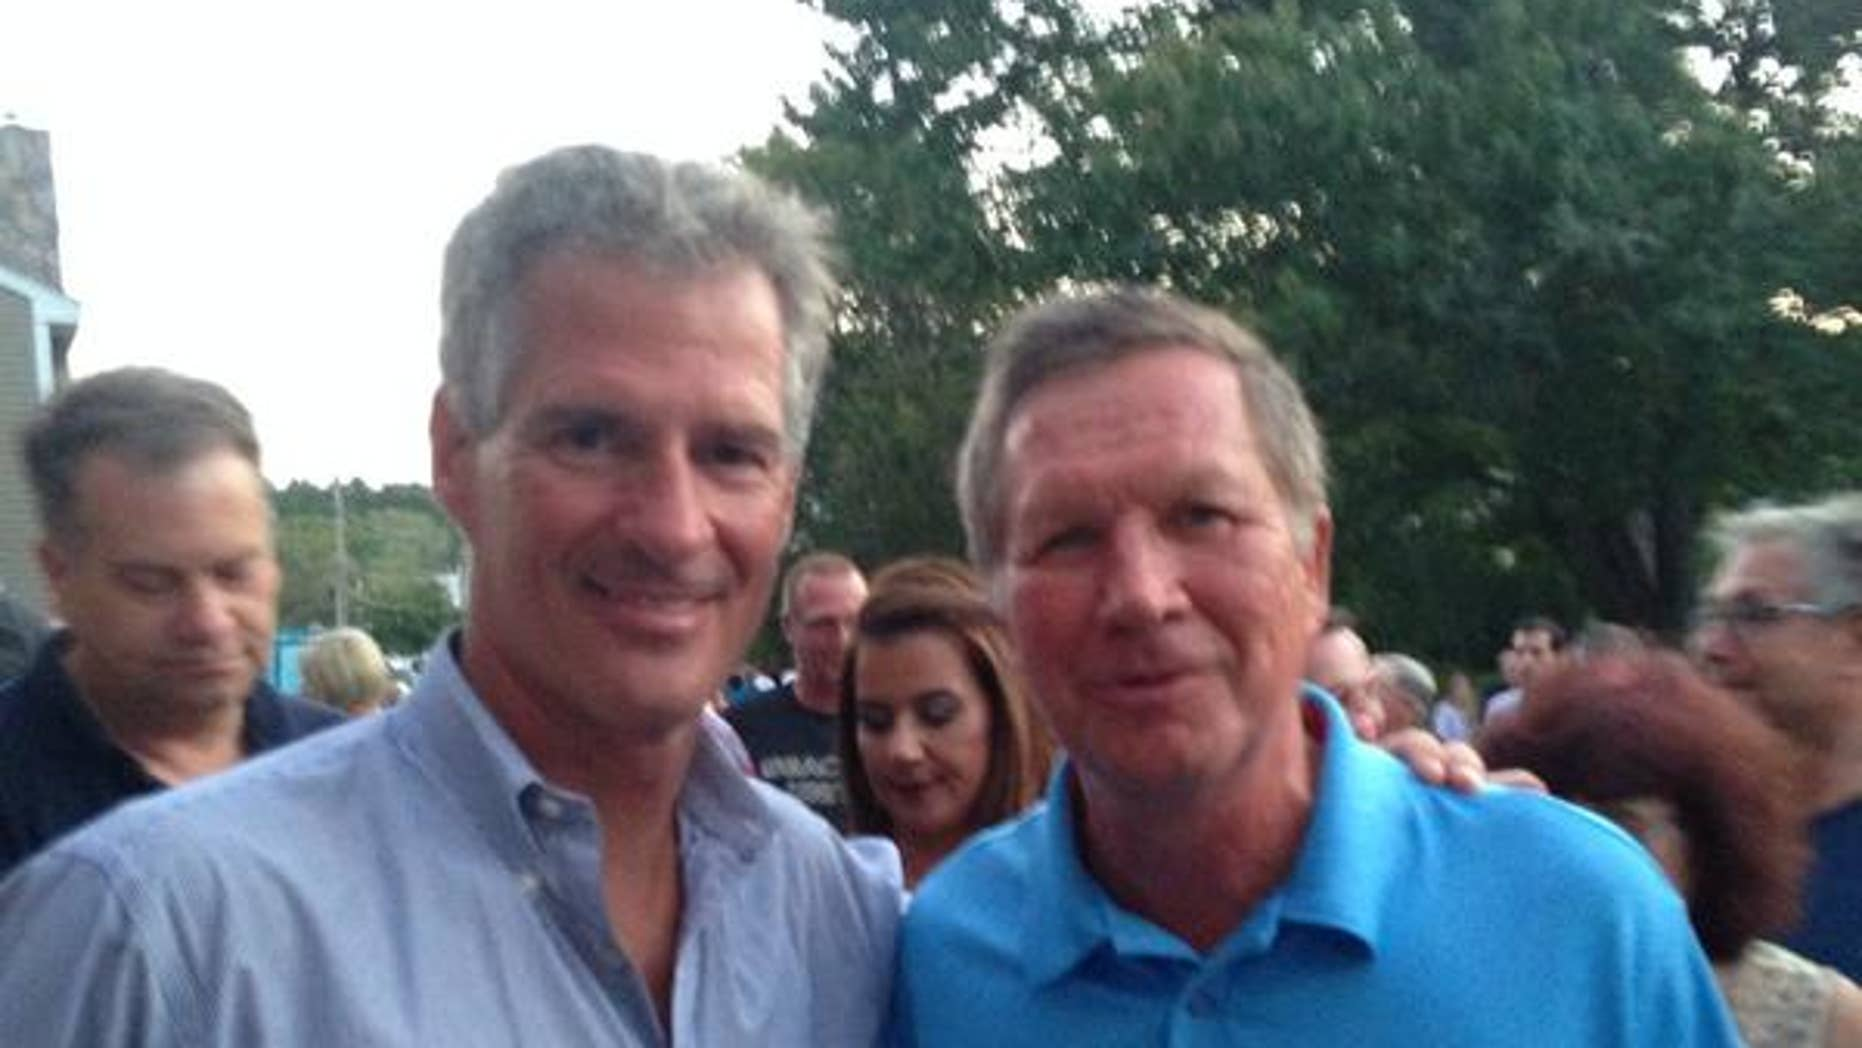 Former Mass. Sen. Scott Brown and Ohio Gov. John Kasich at Brown's 'No BS backyard barbecue' event. (Facebook)